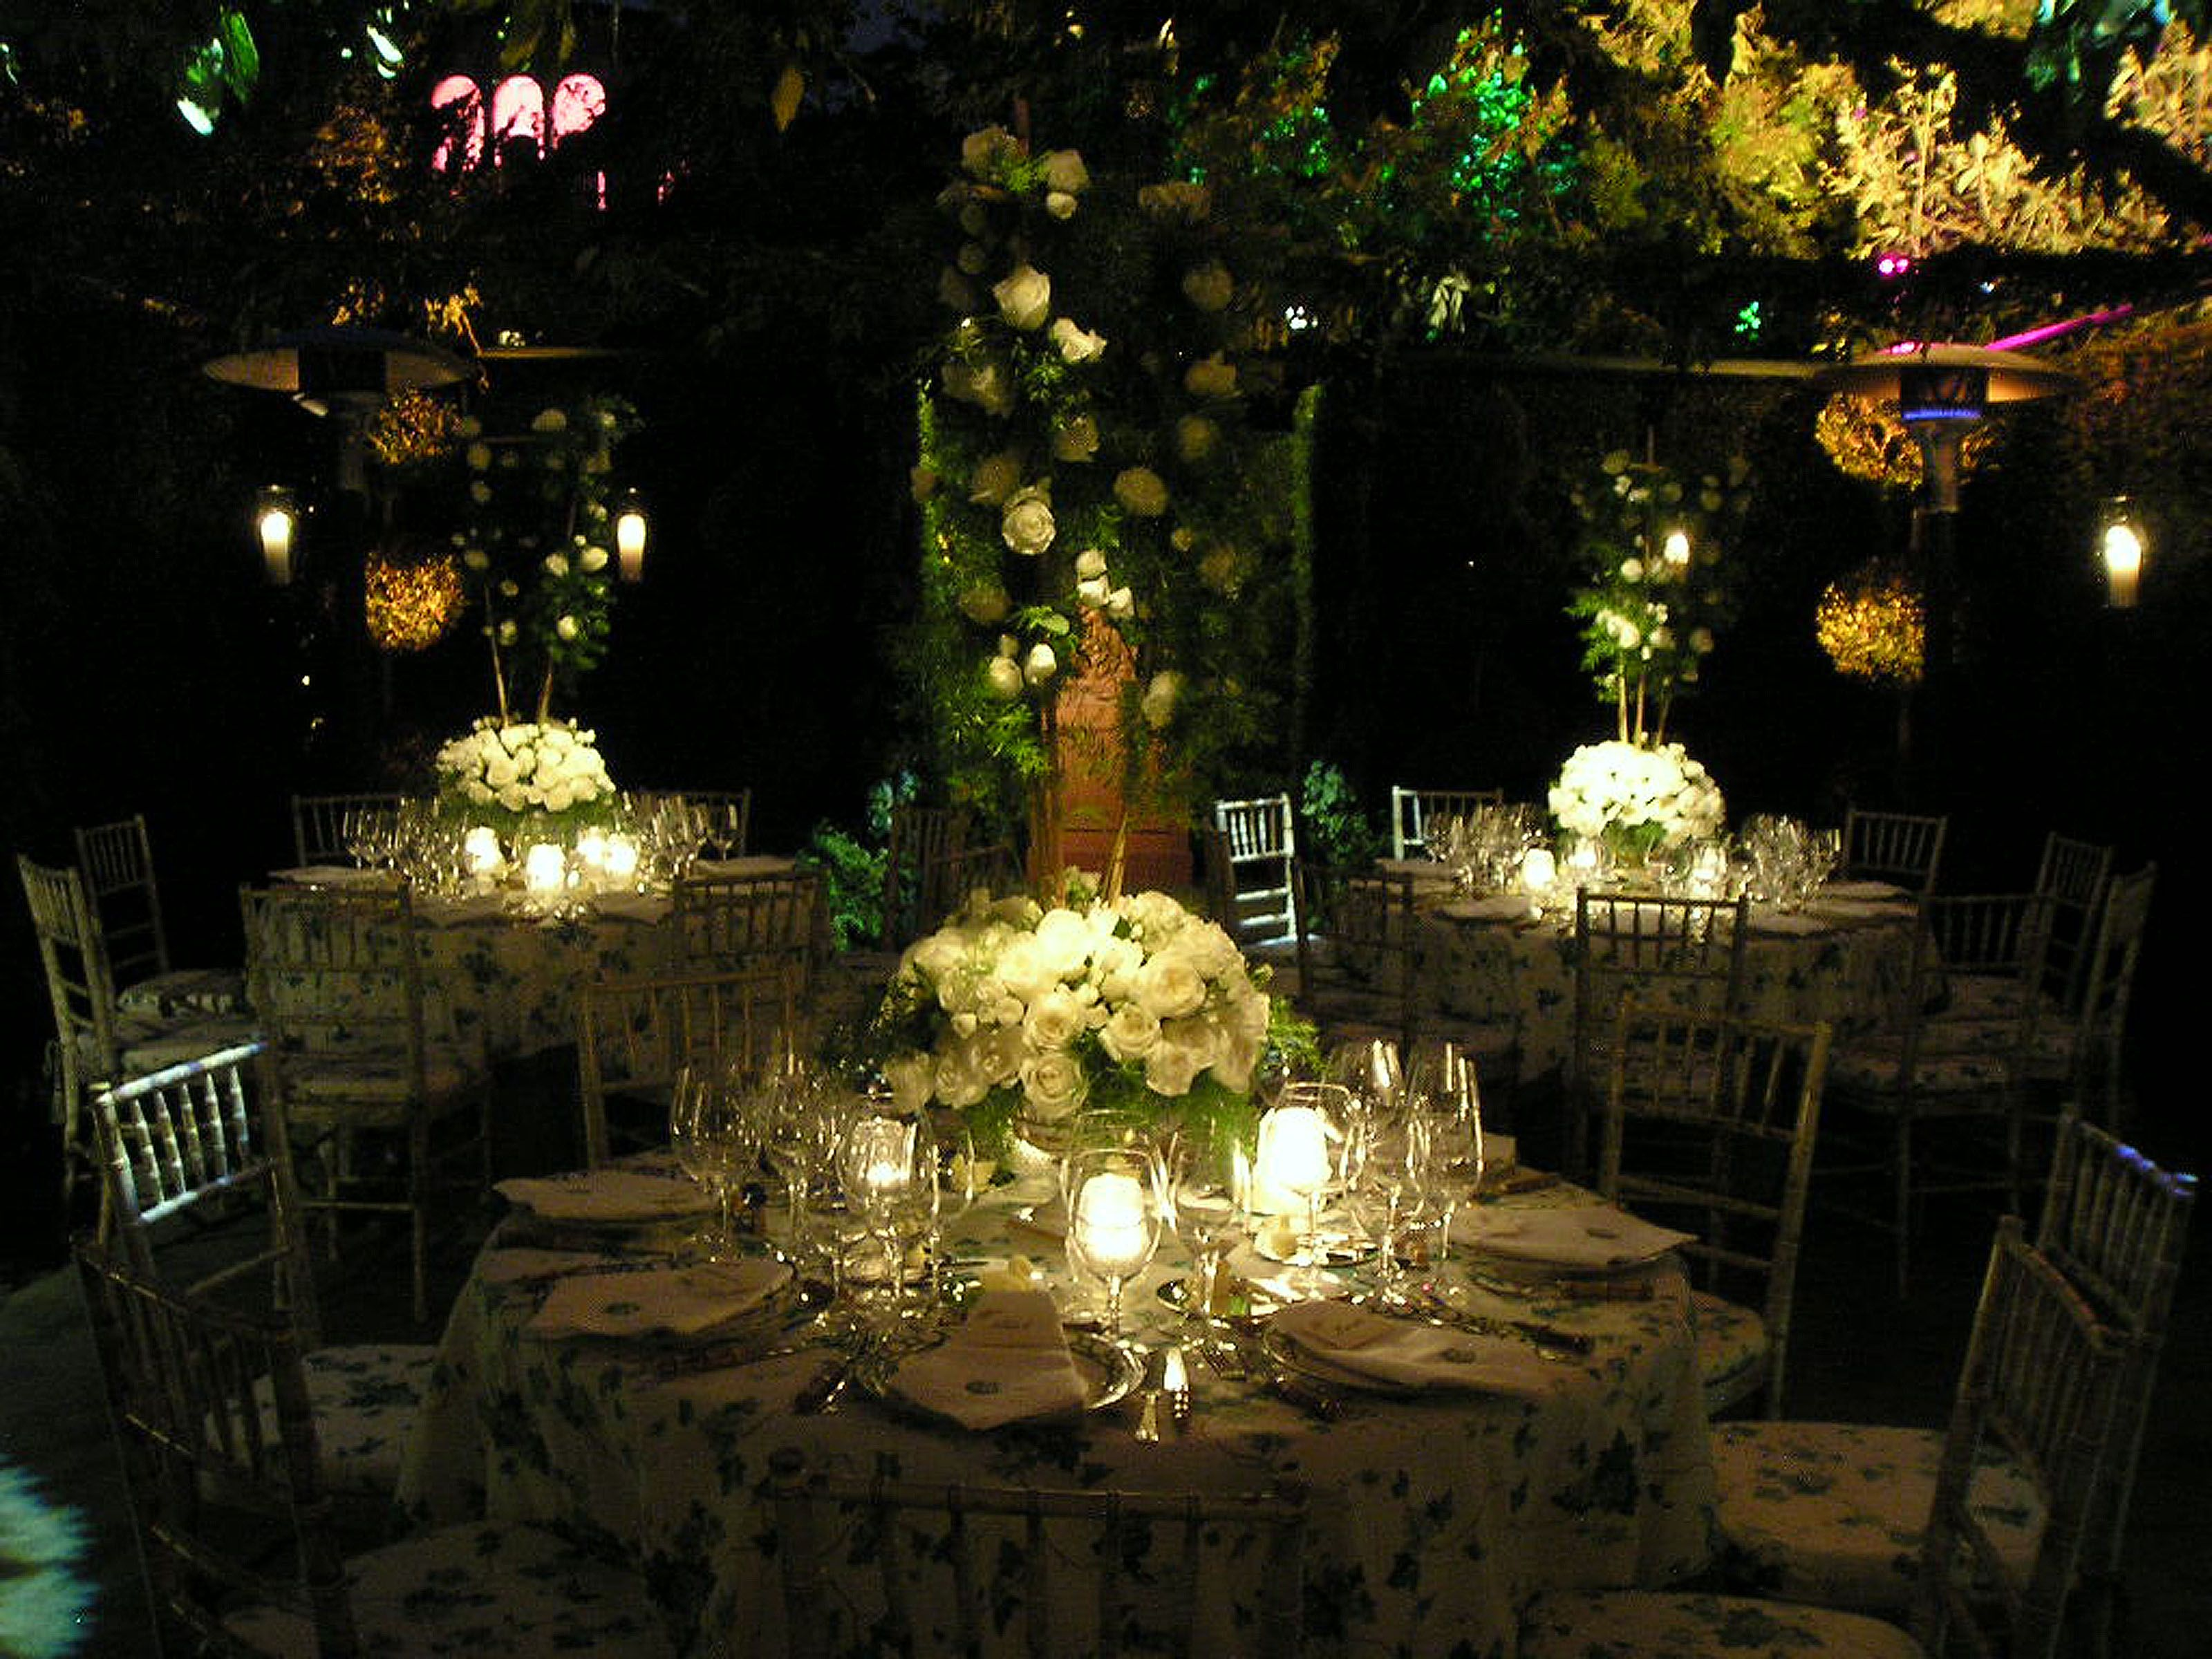 Outdoor weddings do yourself ideas fariasdinnerinthegarden016 outdoor weddings do yourself ideas fariasdinnerinthegarden016 effective event lighting solutioingenieria Images